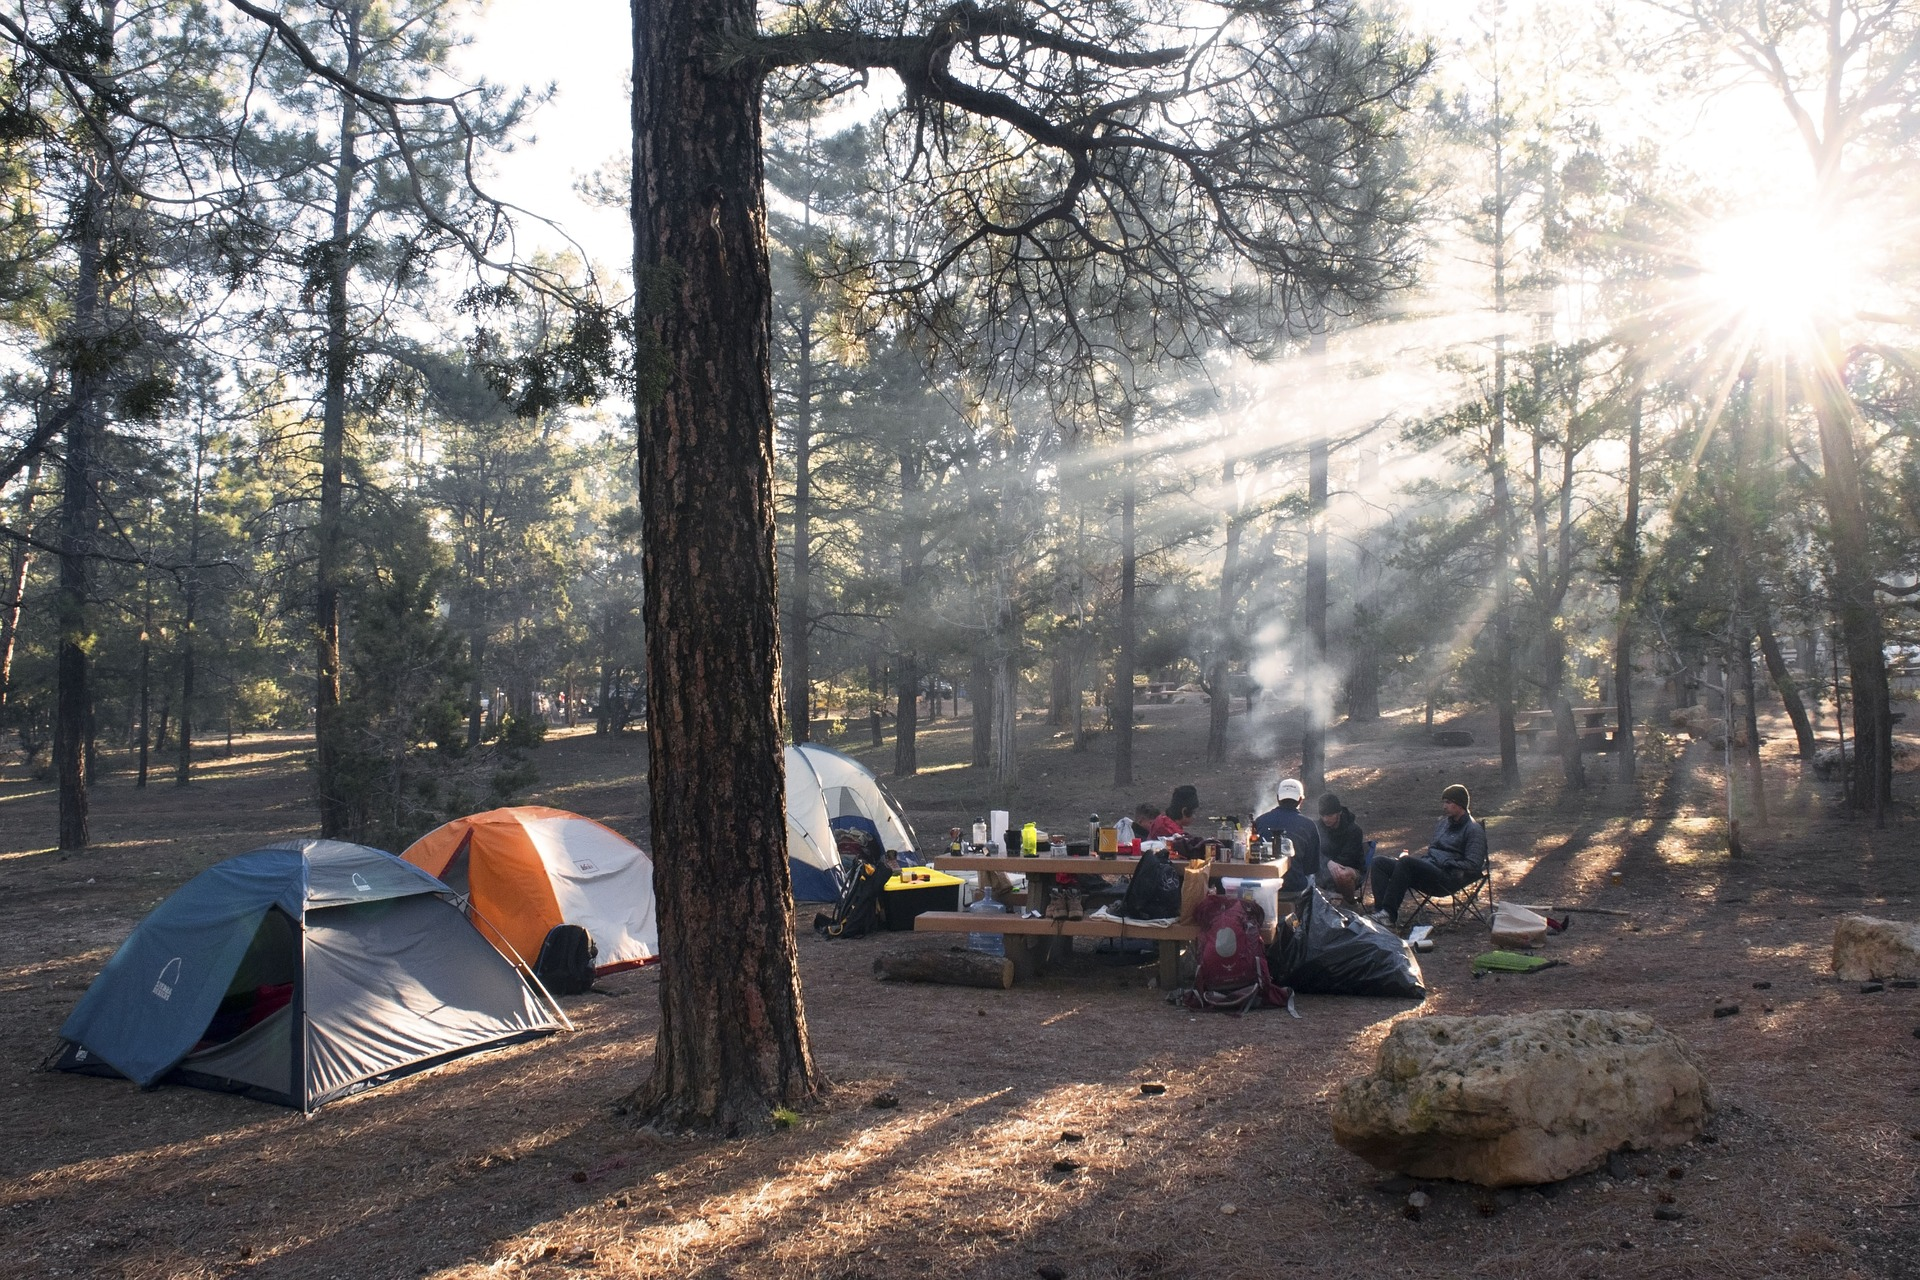 camping in a forest campground